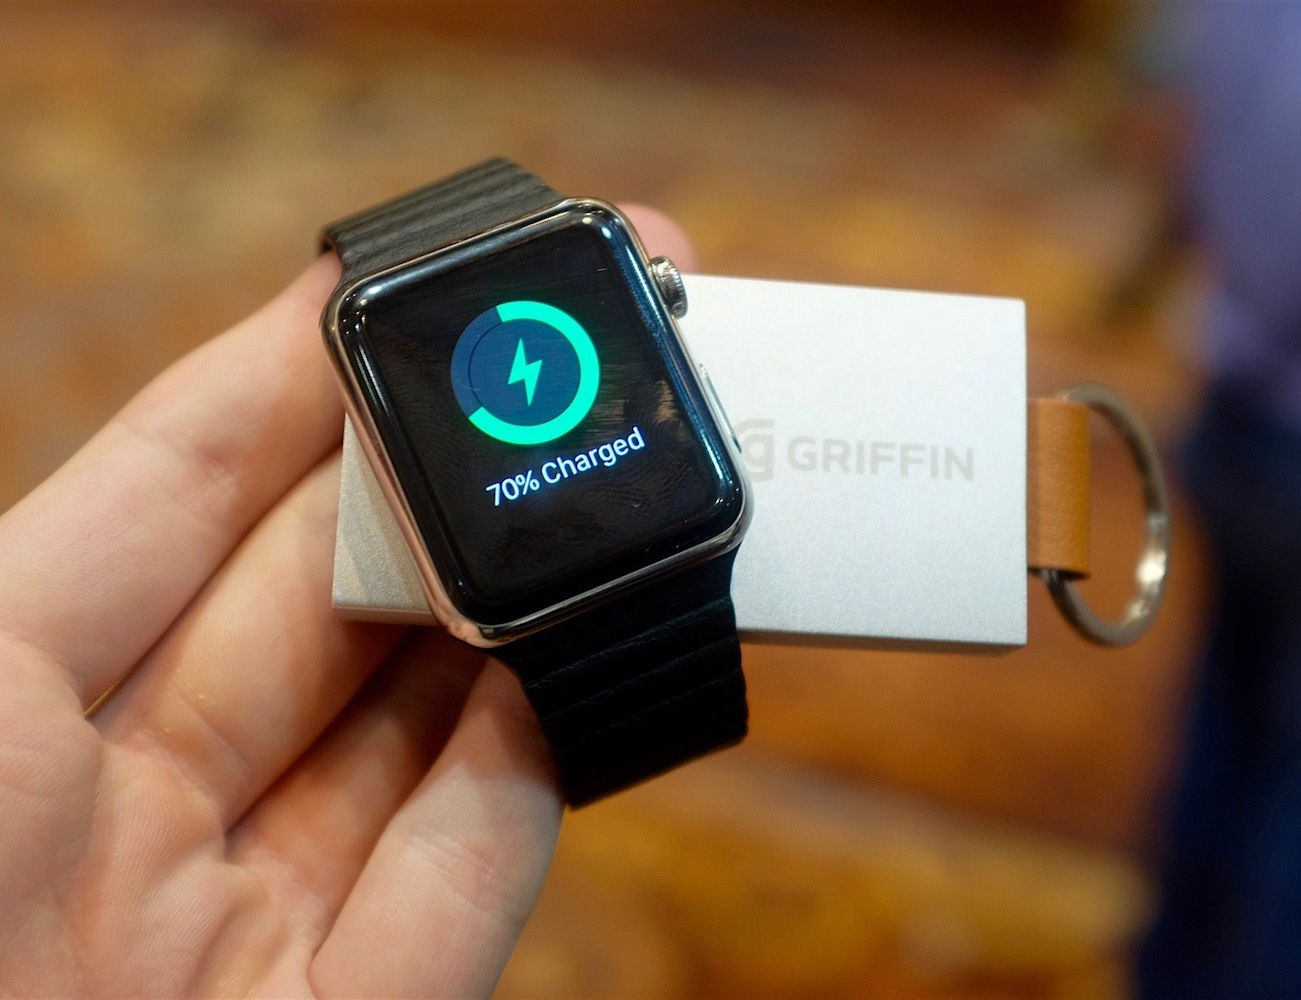 travel-power-bank-by-griffin-keychain-sized-external-battery-for-apple-watch-01